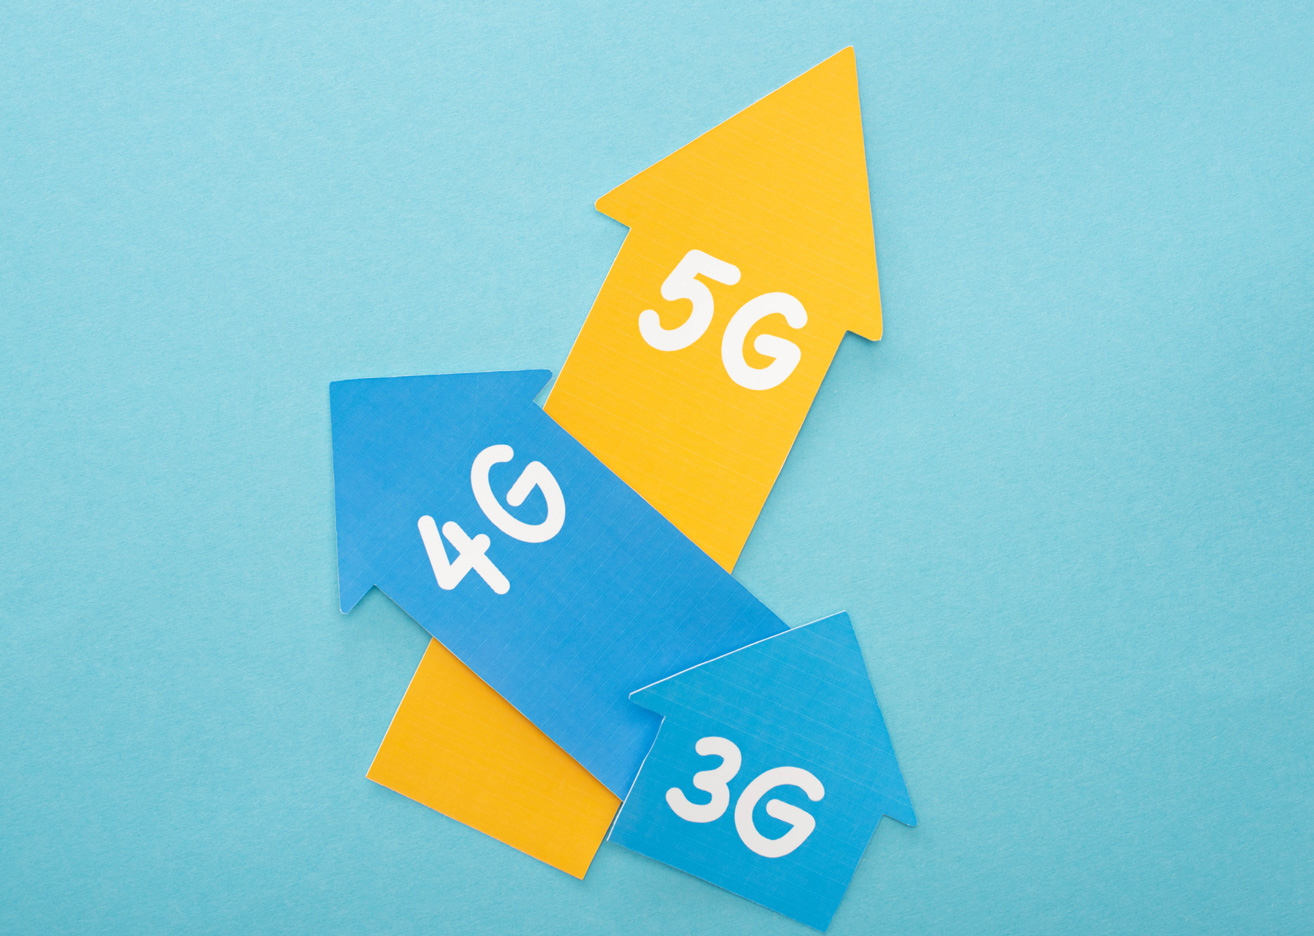 2G 3G 4G 5G - The Evolution of Gs